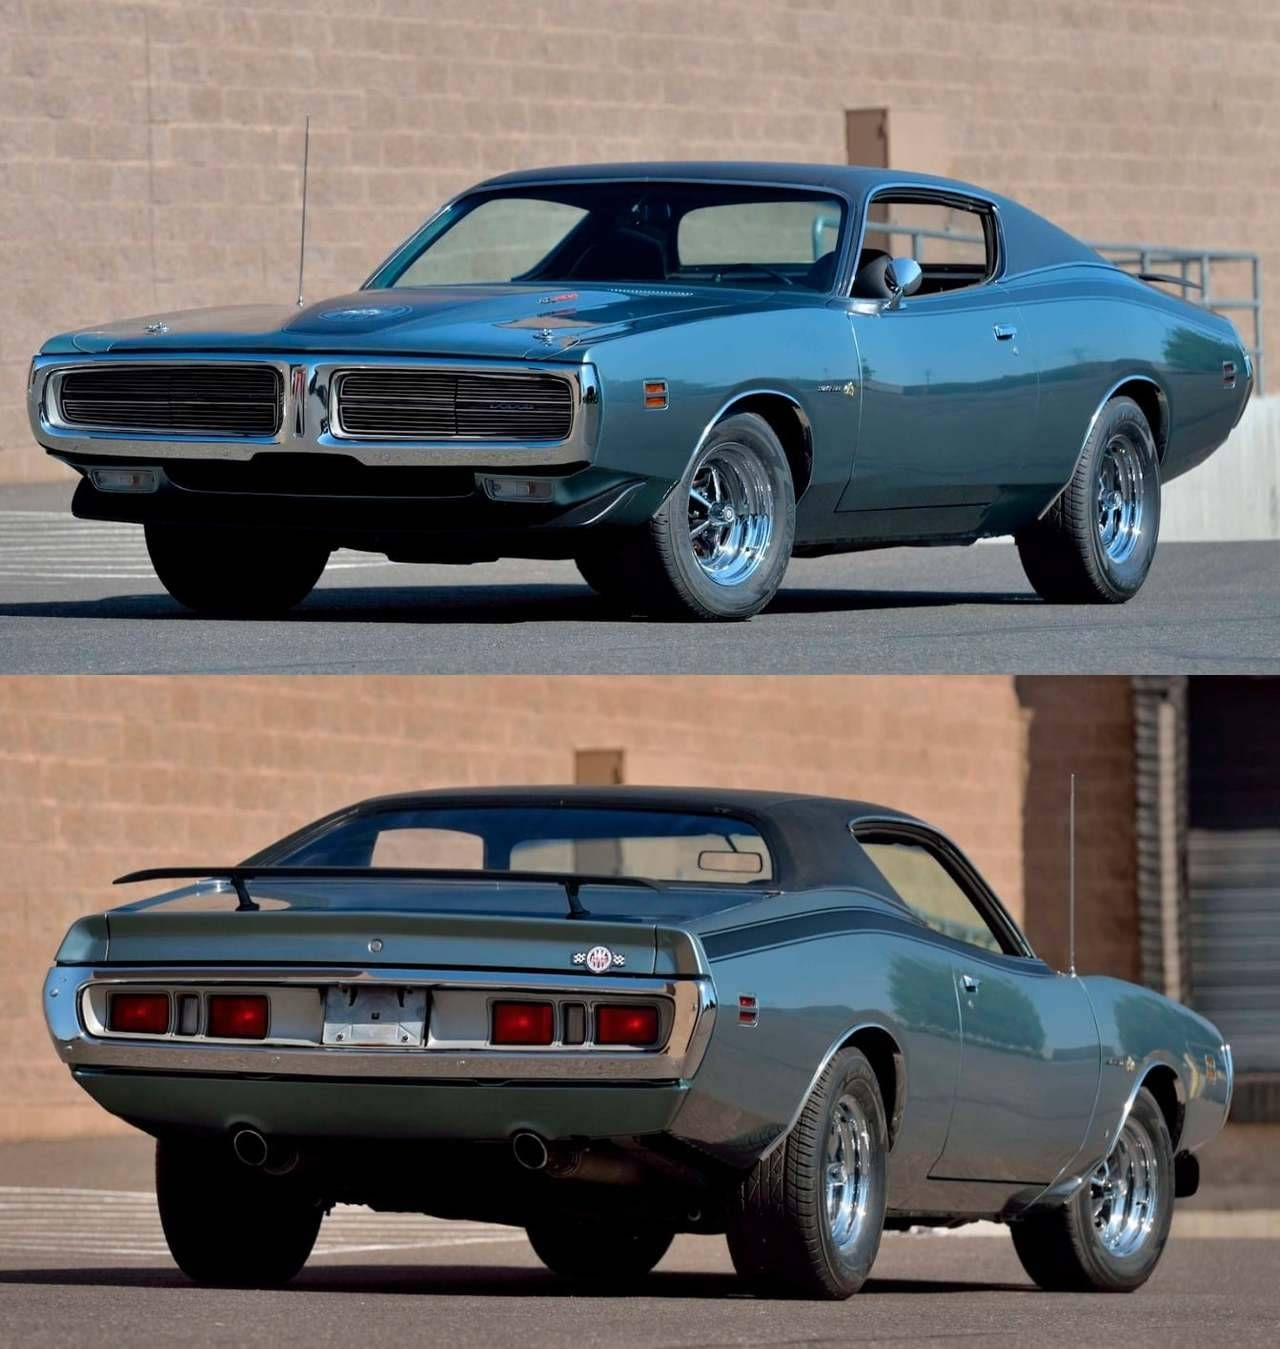 Rare 1971 Dodge HEMI Super Bee 4-speed (With Images